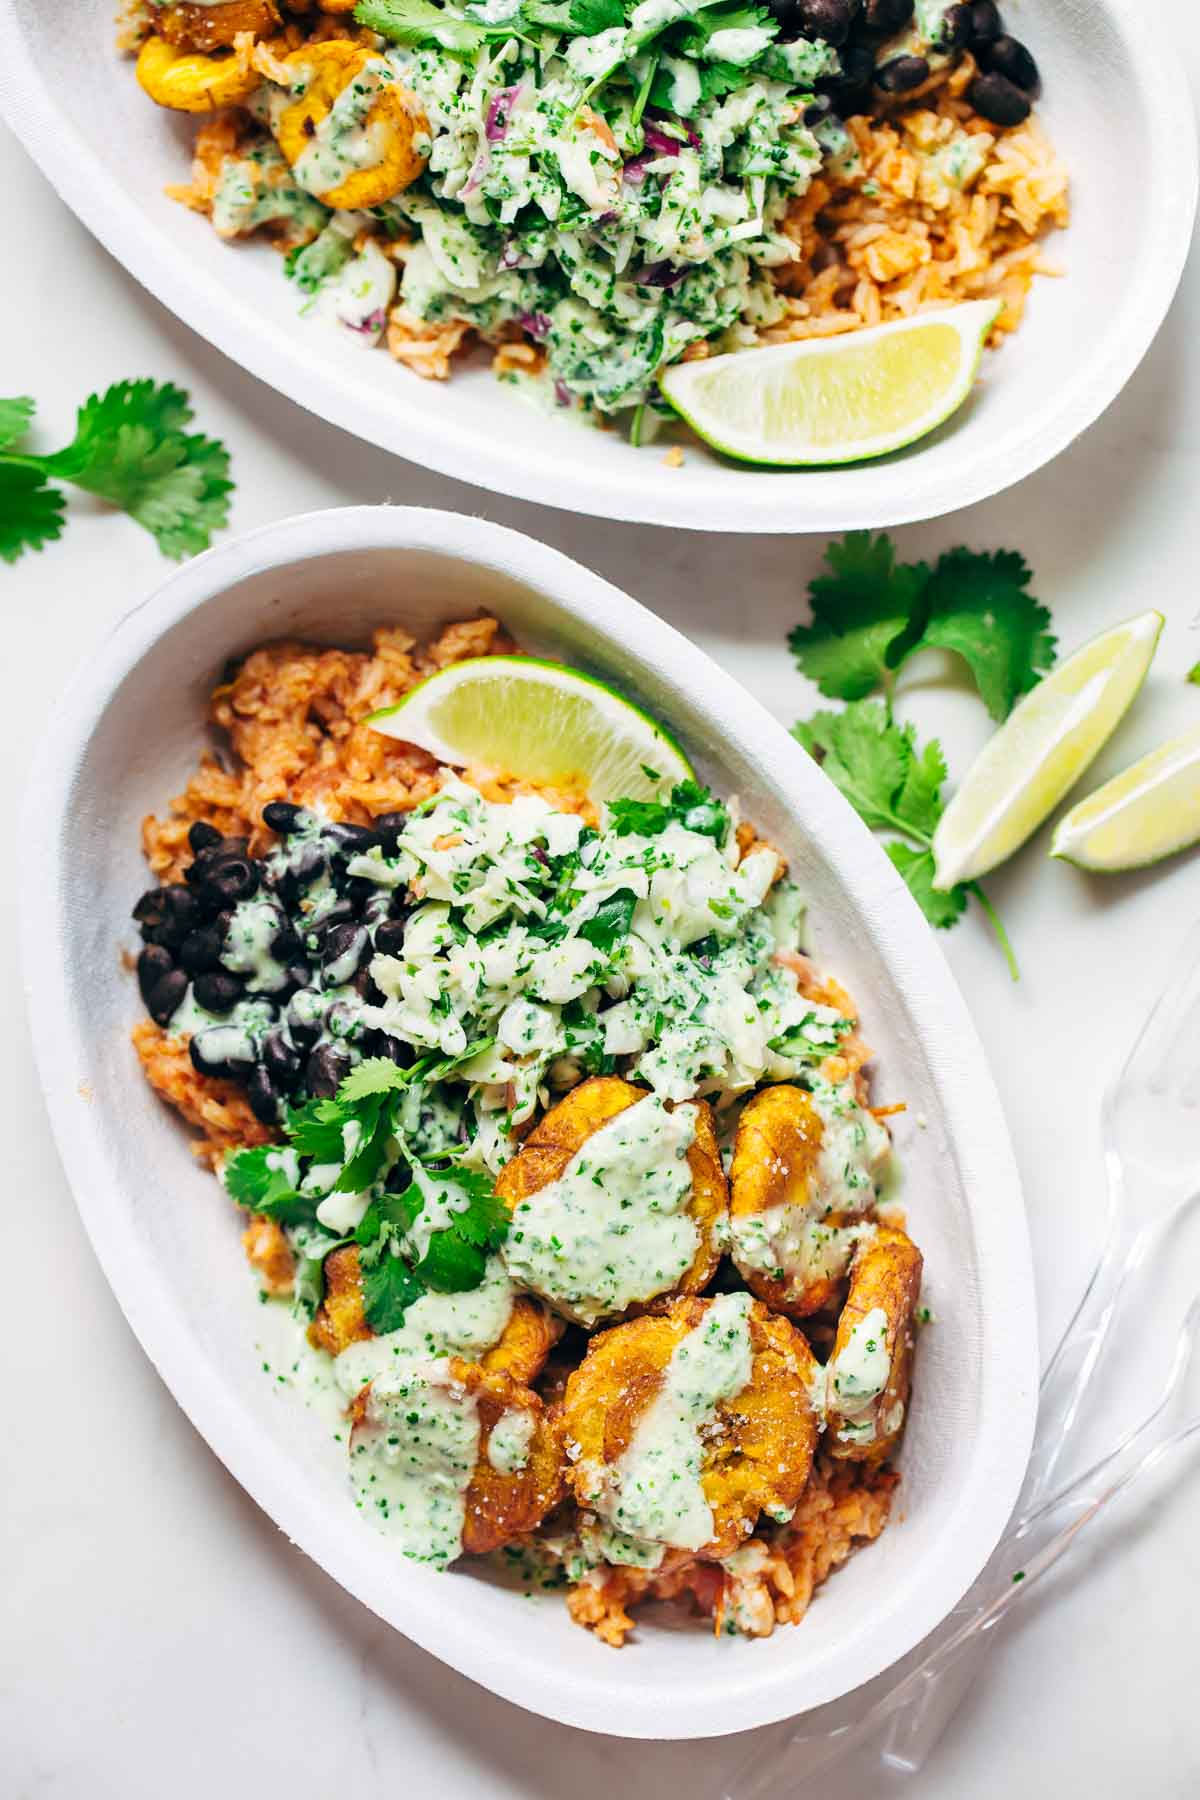 Spicy Brazilian Burrito Bowls recipe featuring seasoned rice and beans, garlic cilantro lime slaw, and crispy fried plantains. So good // almost vegan. | pinchofyum.com